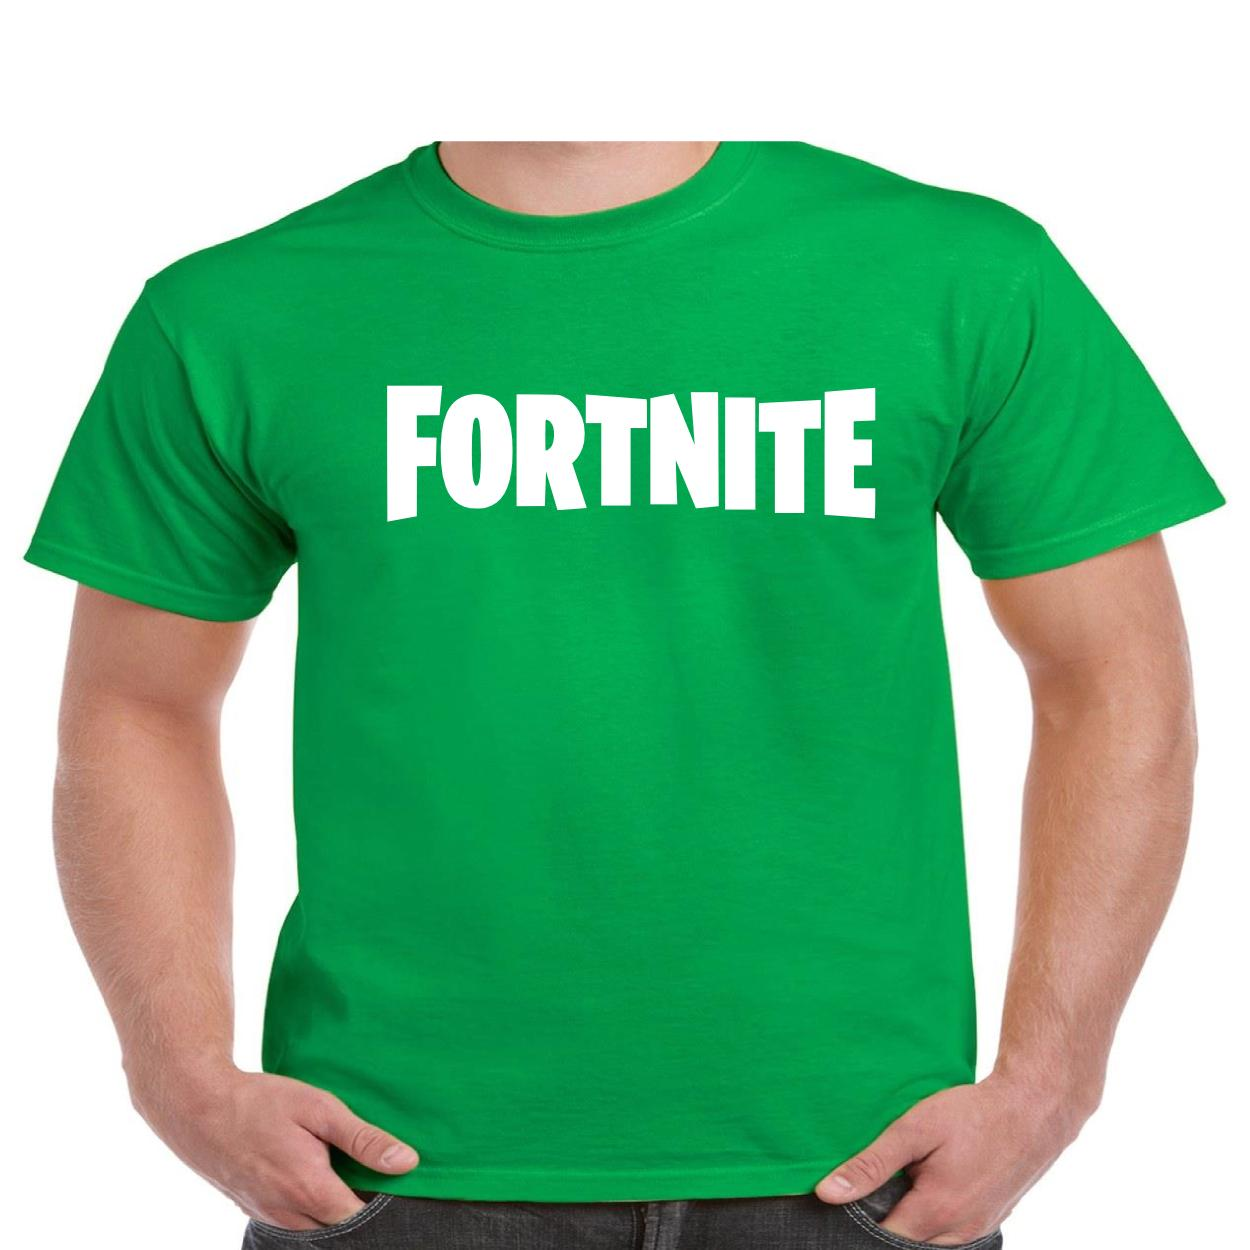 bd35bc76 Details Zu Fortnite T Shirt Battle Royale #1 Victory Mens And Youth Sizes  #172Funny Unisex Casual Gift Tee Shirt Online Shopping 24 Hour Tee Shirts  From ...